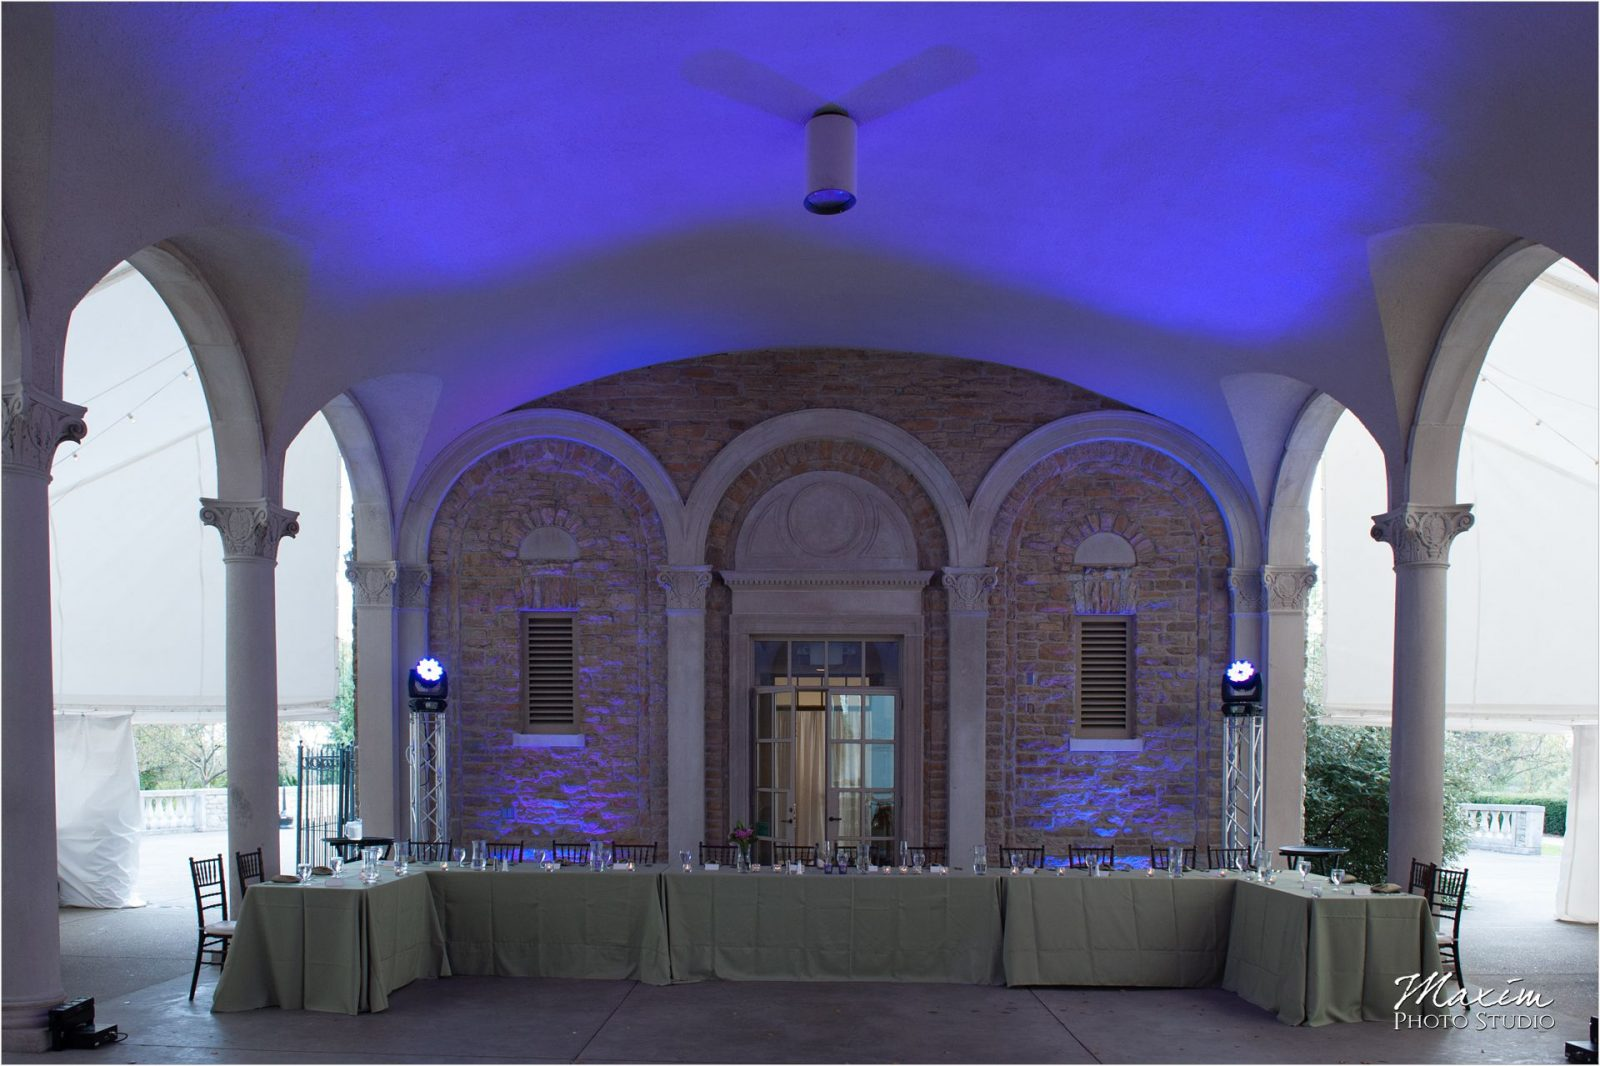 Ault Park Cincinnati Wedding Reception DJCincy lighting